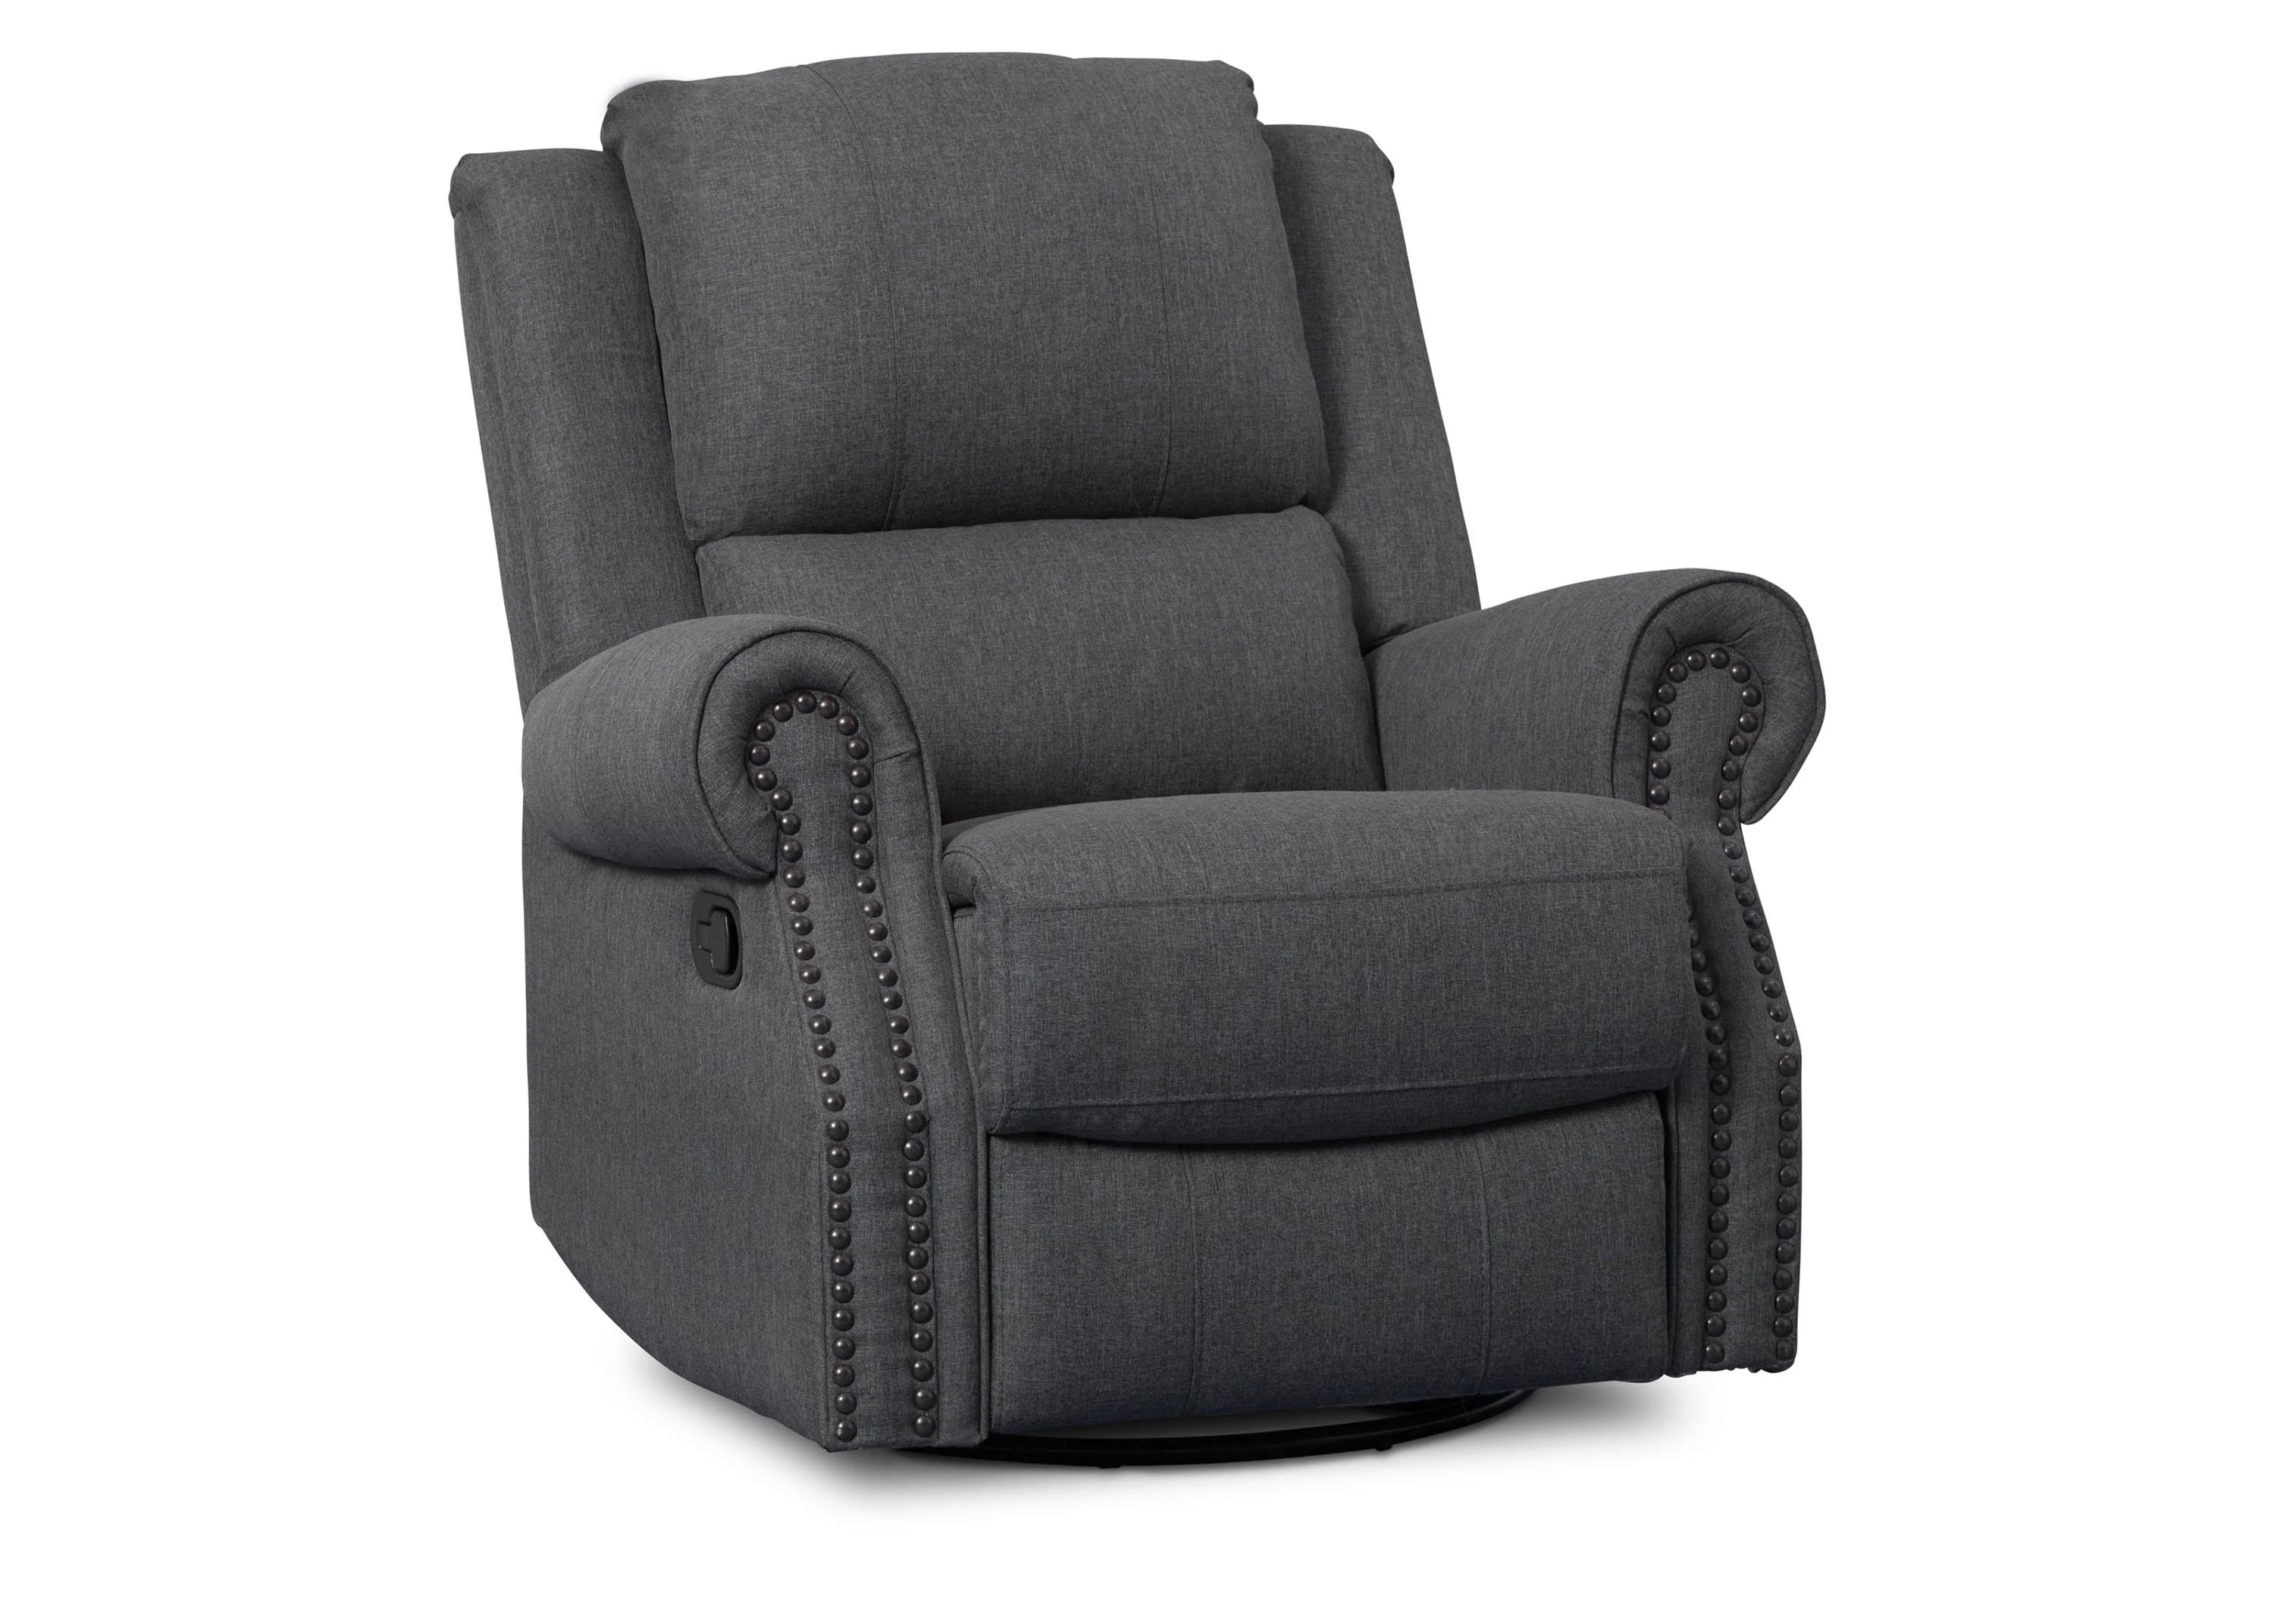 Delta Children Chair Caleb Nursery Recliner Glider Swivel Chair Delta Children Year